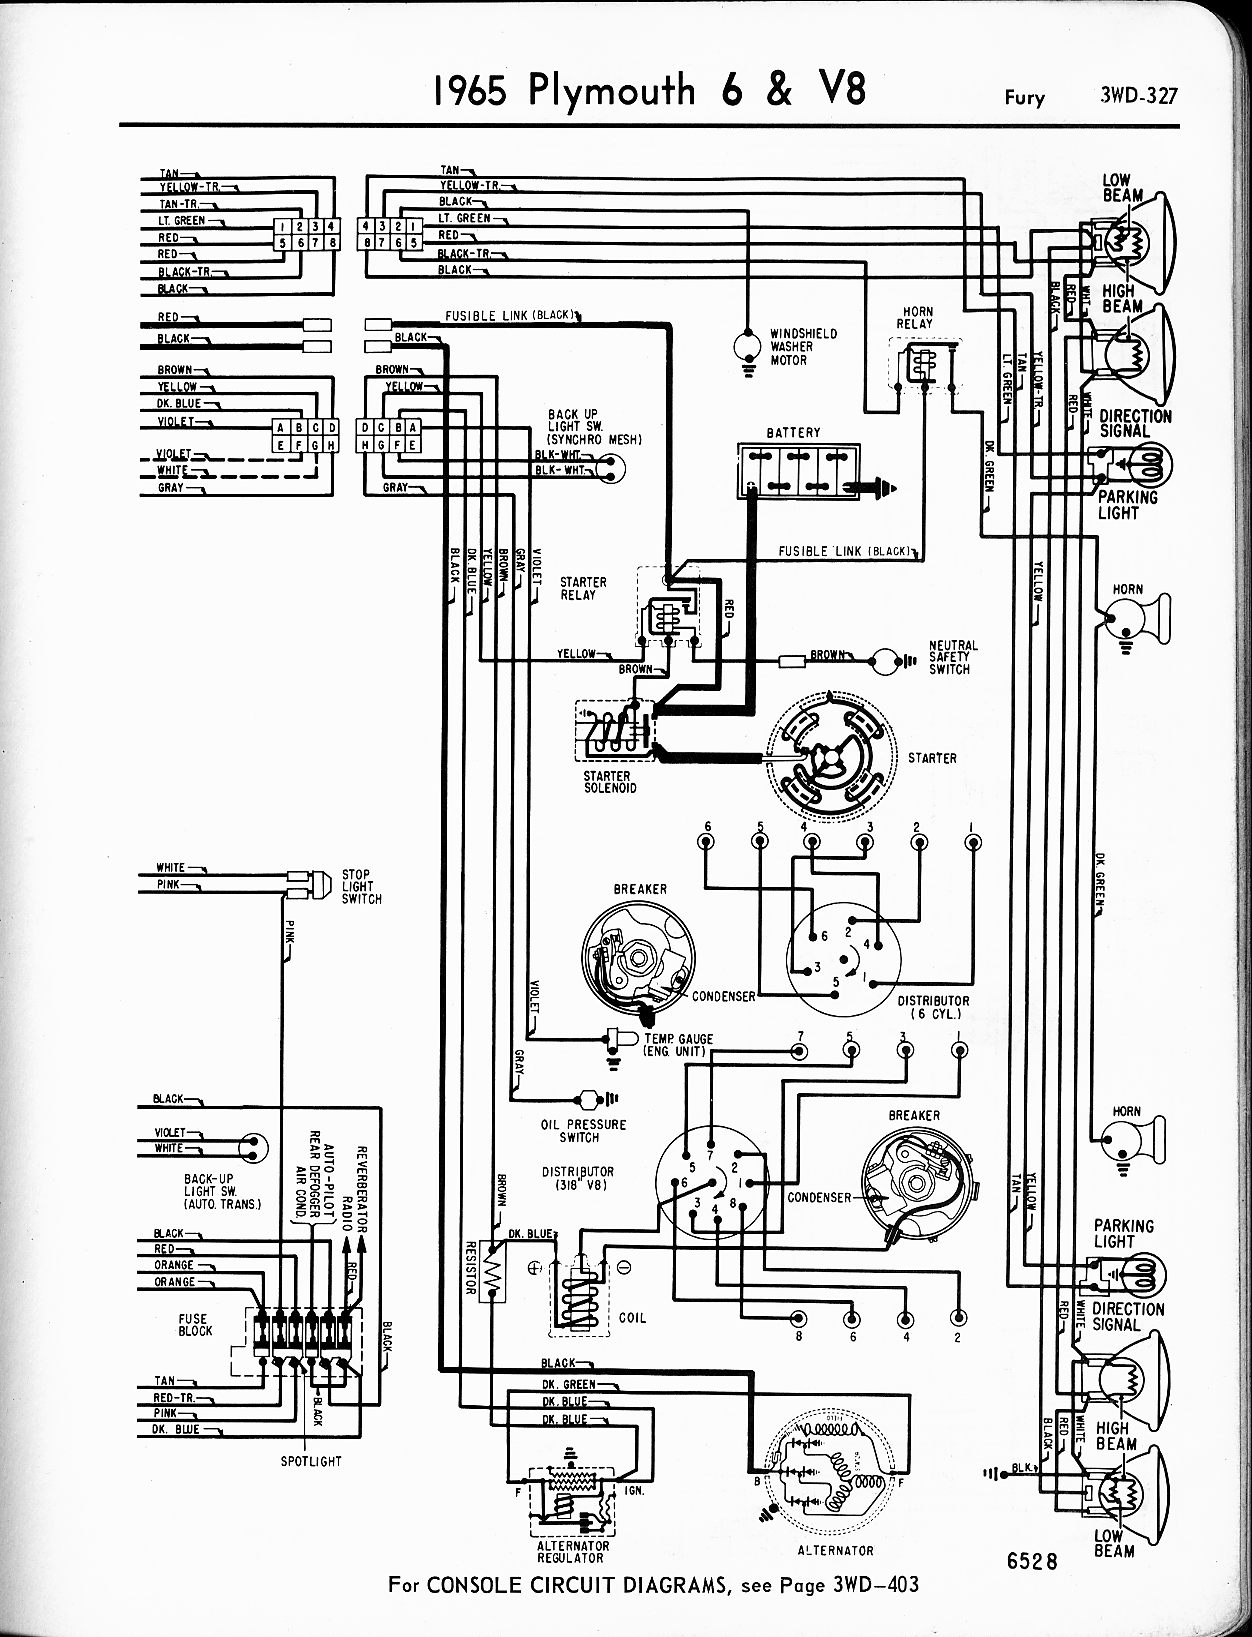 1956 1965 Plymouth Wiring The Old Car Manual Project 1964 5 Mustang Diagram Dash 6 V8 Fury Right Page